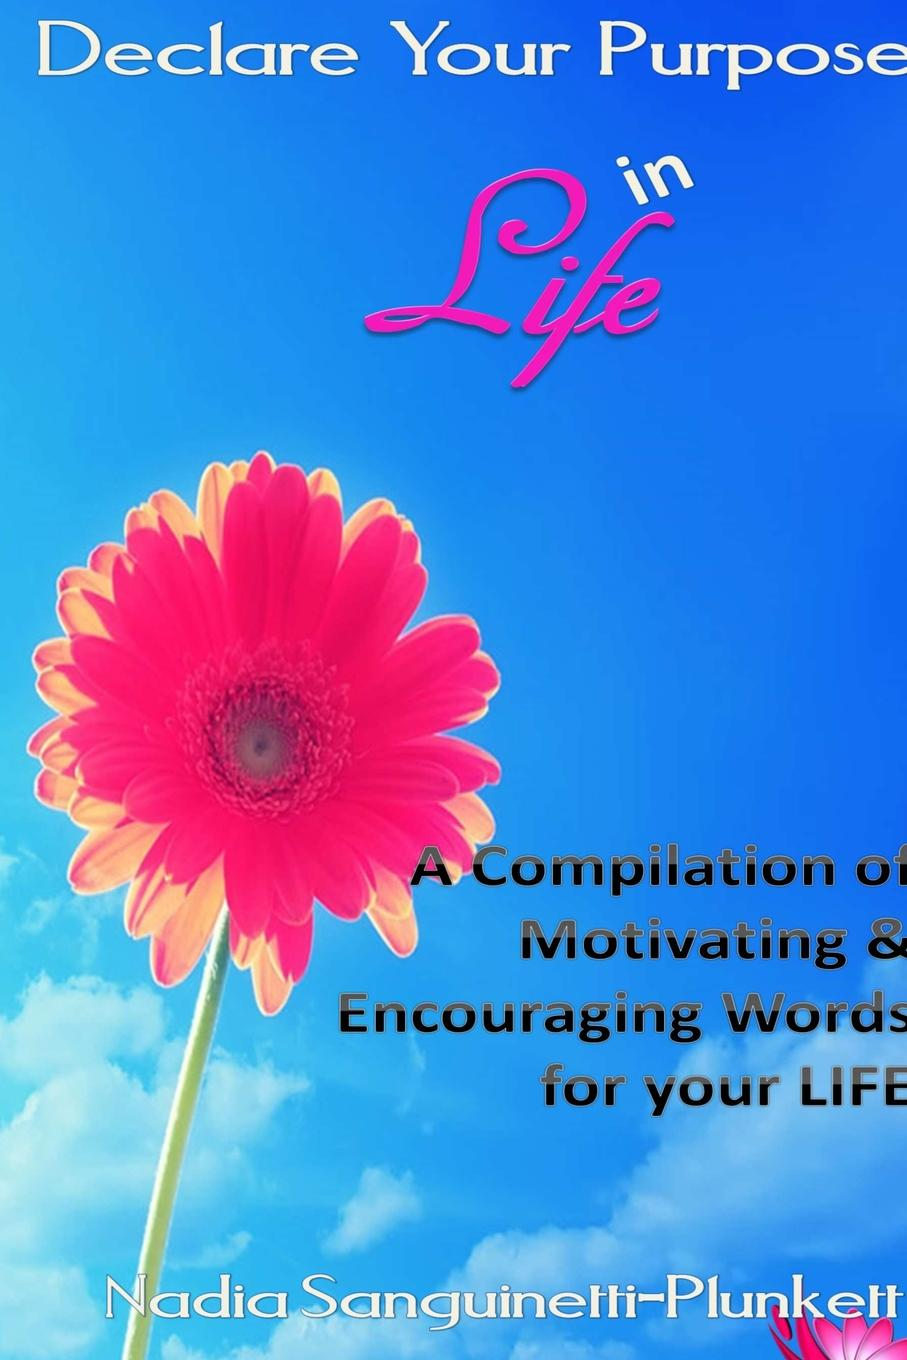 Nadia Plunkett Declare Your Purpose in Life. A Compilation of Motivating . Encouraging Words for Your Life cook for your life